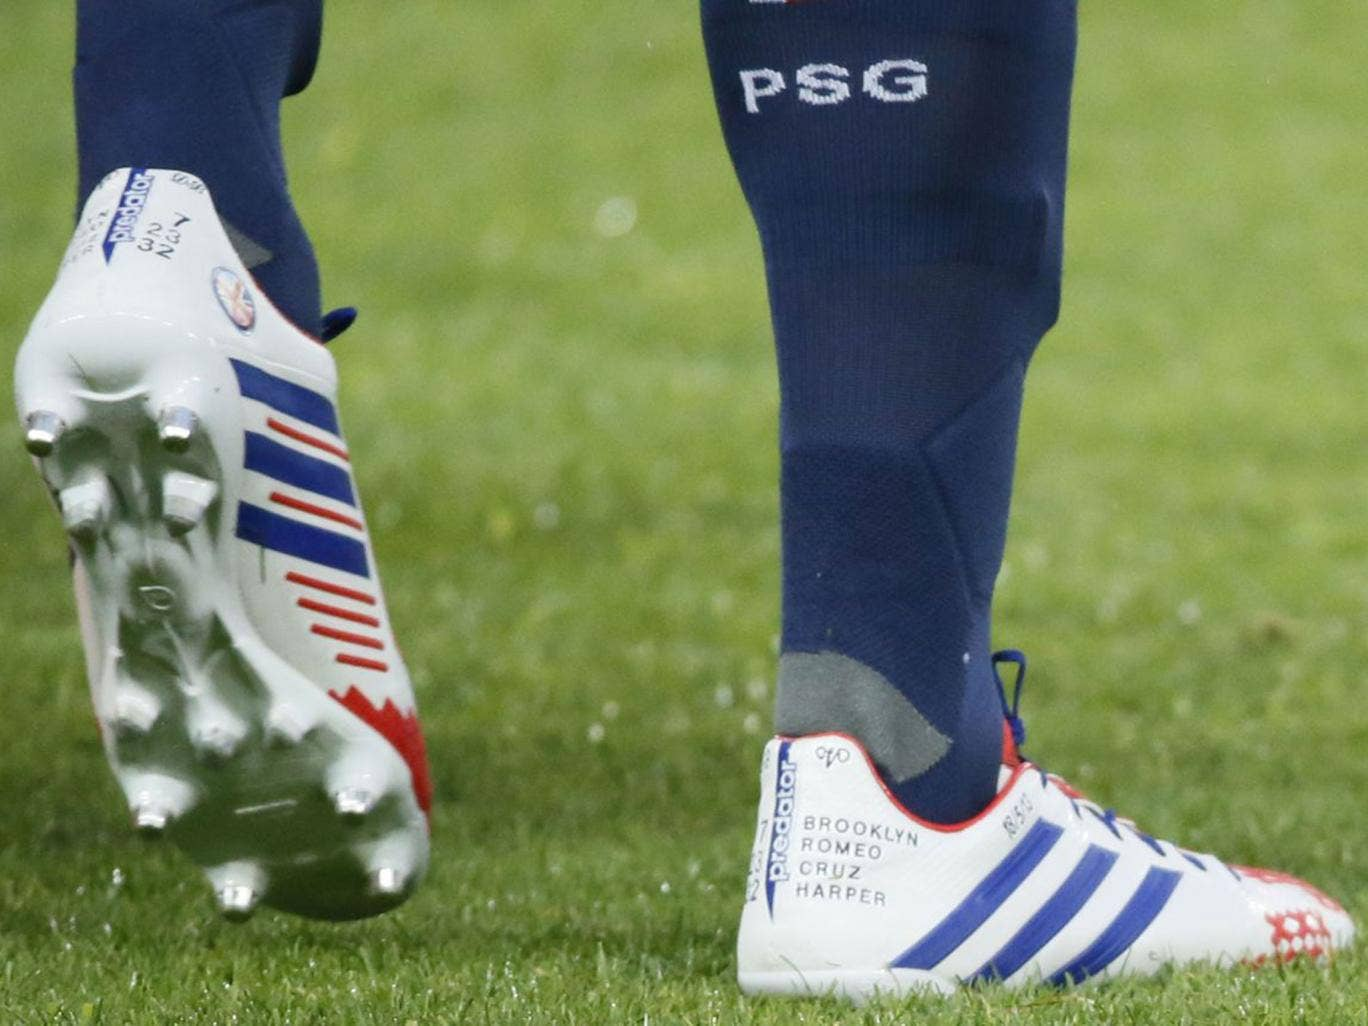 The hybrid boots